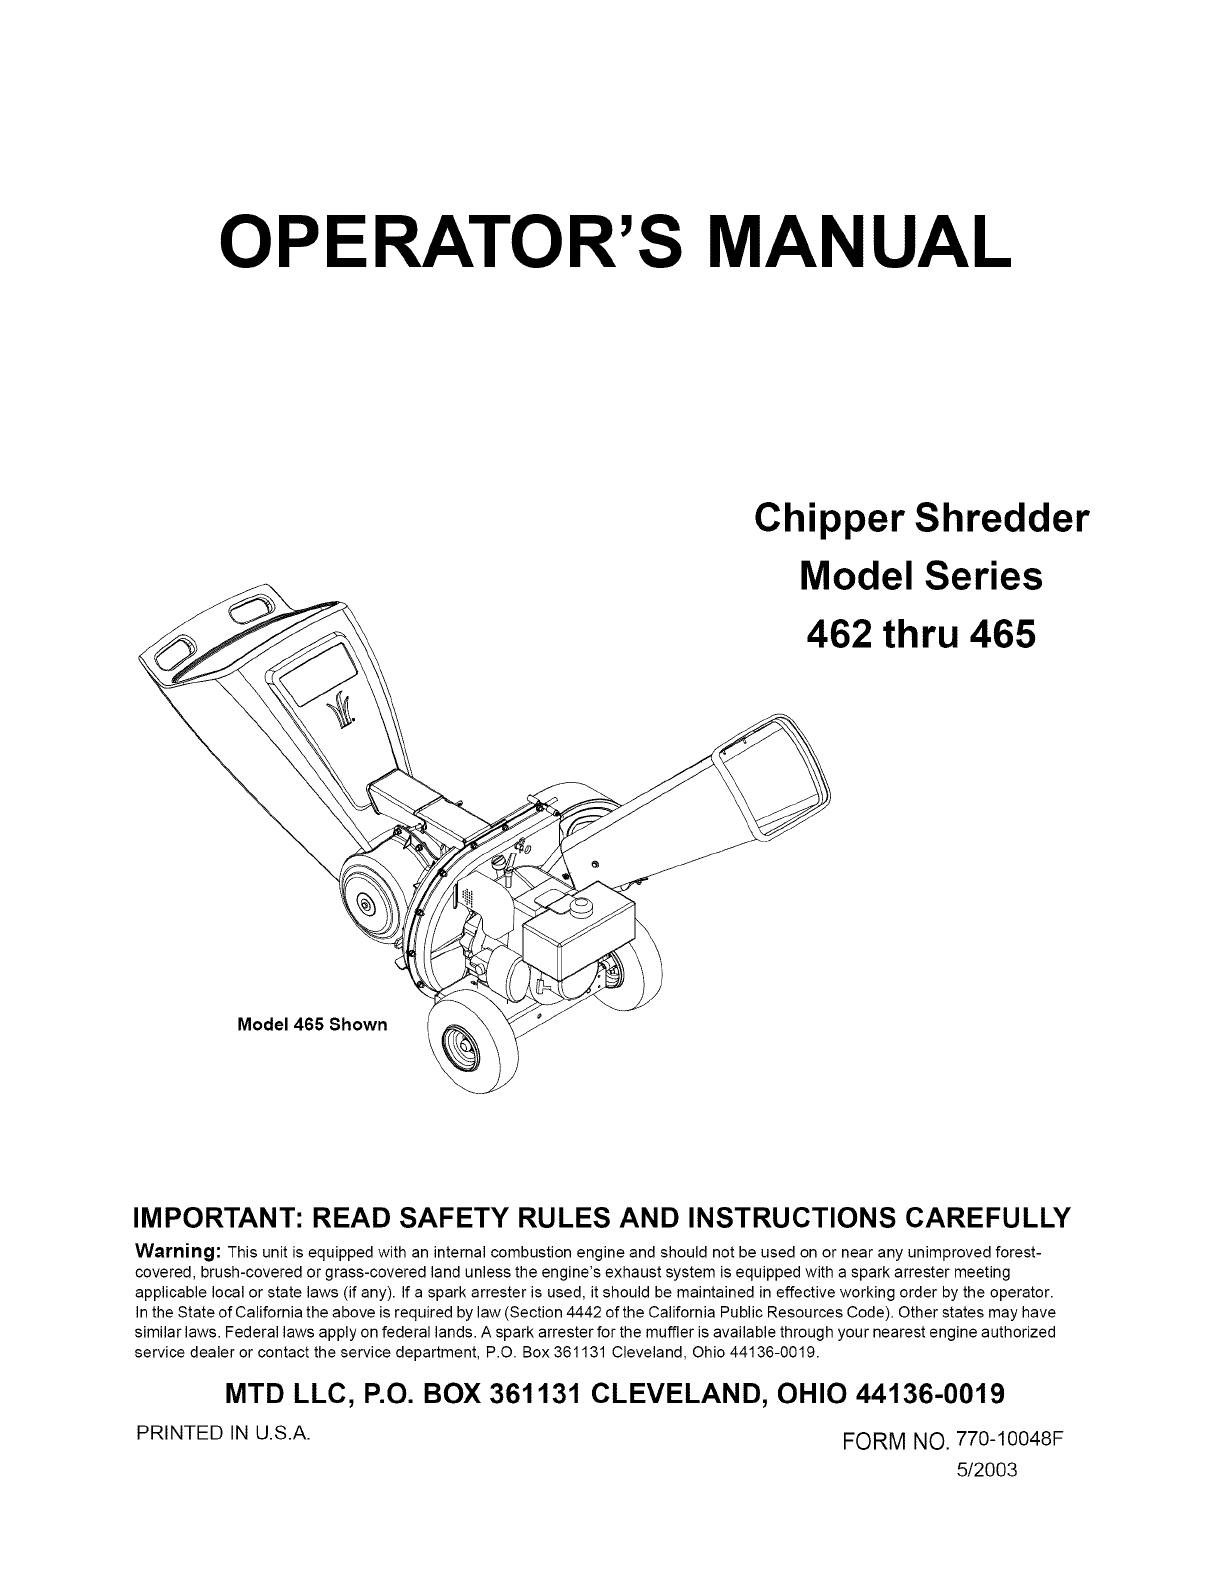 Mtd Engine Parts Diagram For Shredders